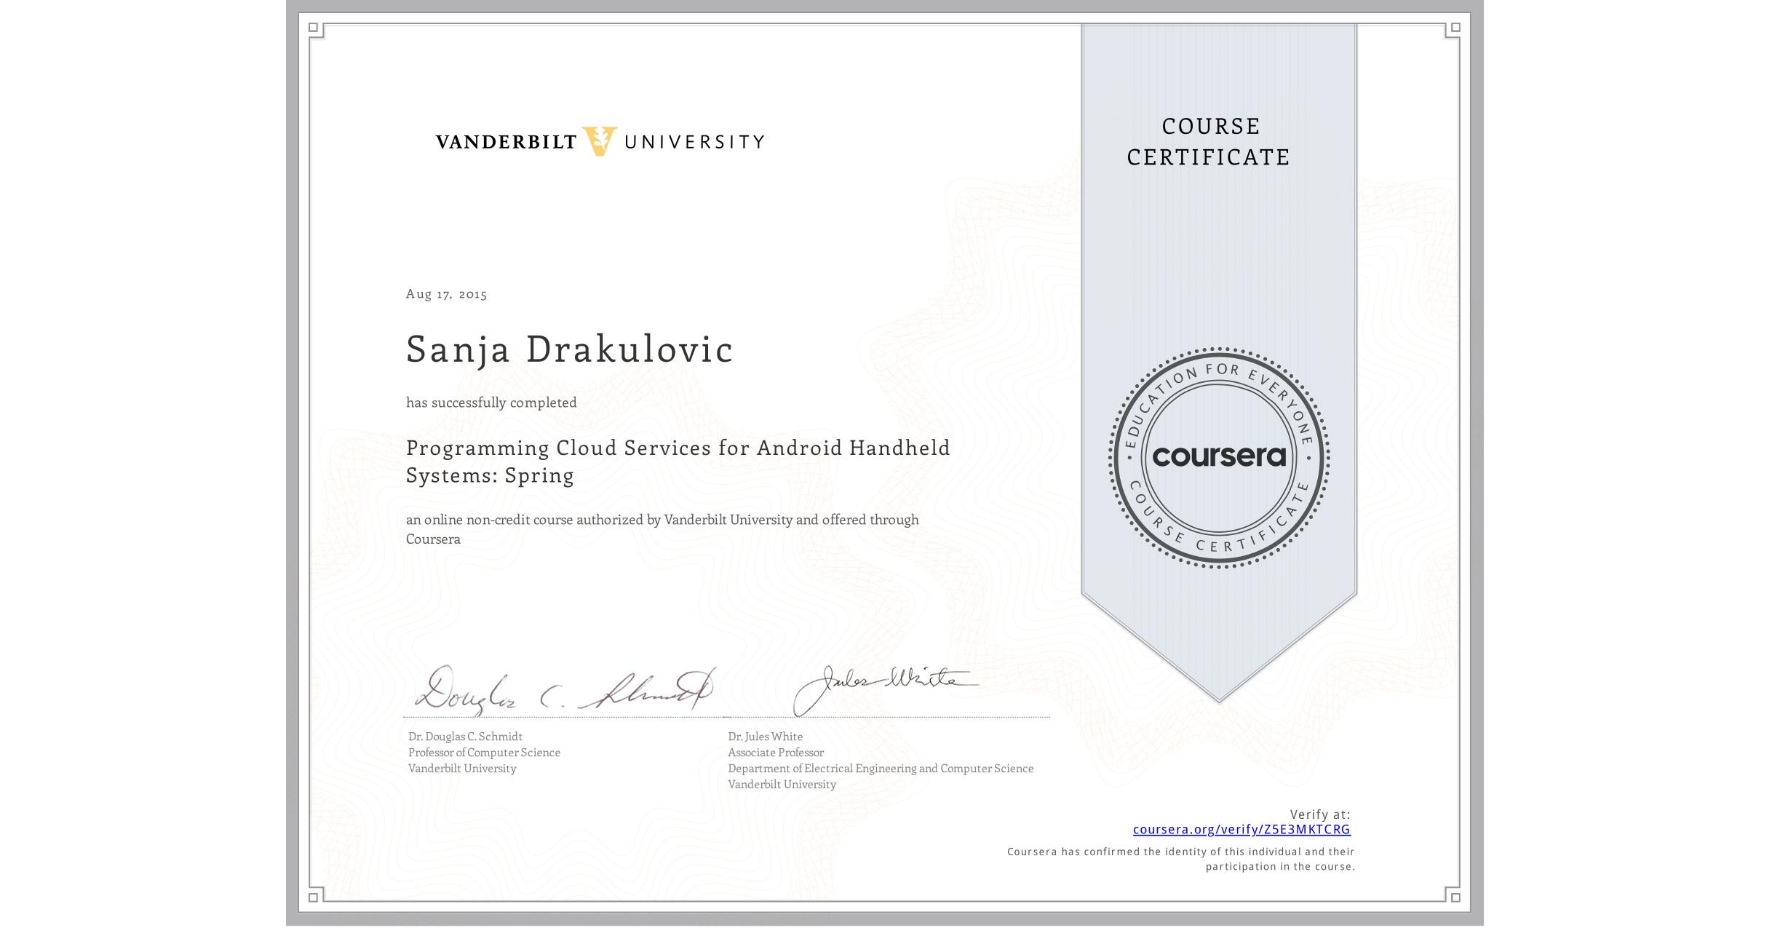 View certificate for Sanja Drakulovic, Programming Cloud Services for Android Handheld Systems: Spring, an online non-credit course authorized by Vanderbilt University and offered through Coursera